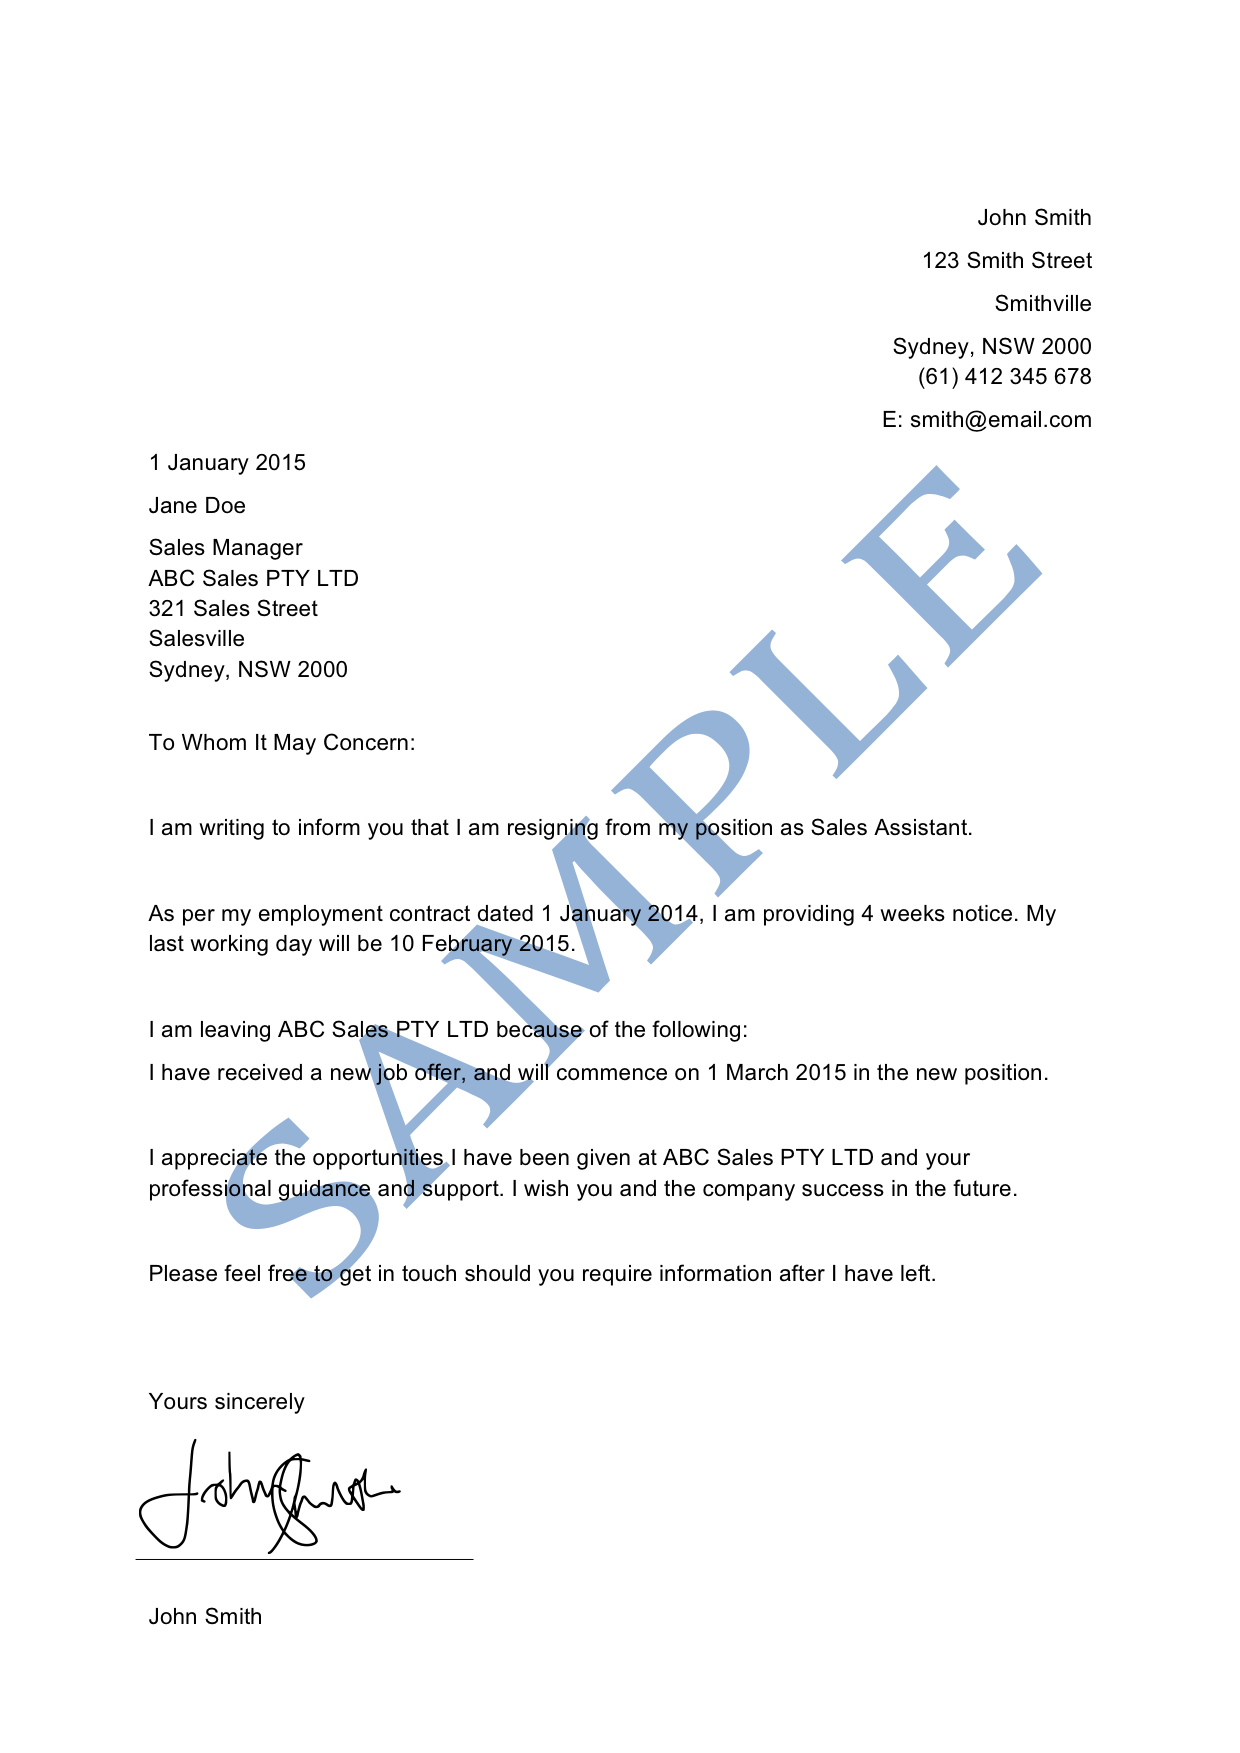 Letter of Resignation Sample (2019 Update) - Lawpath